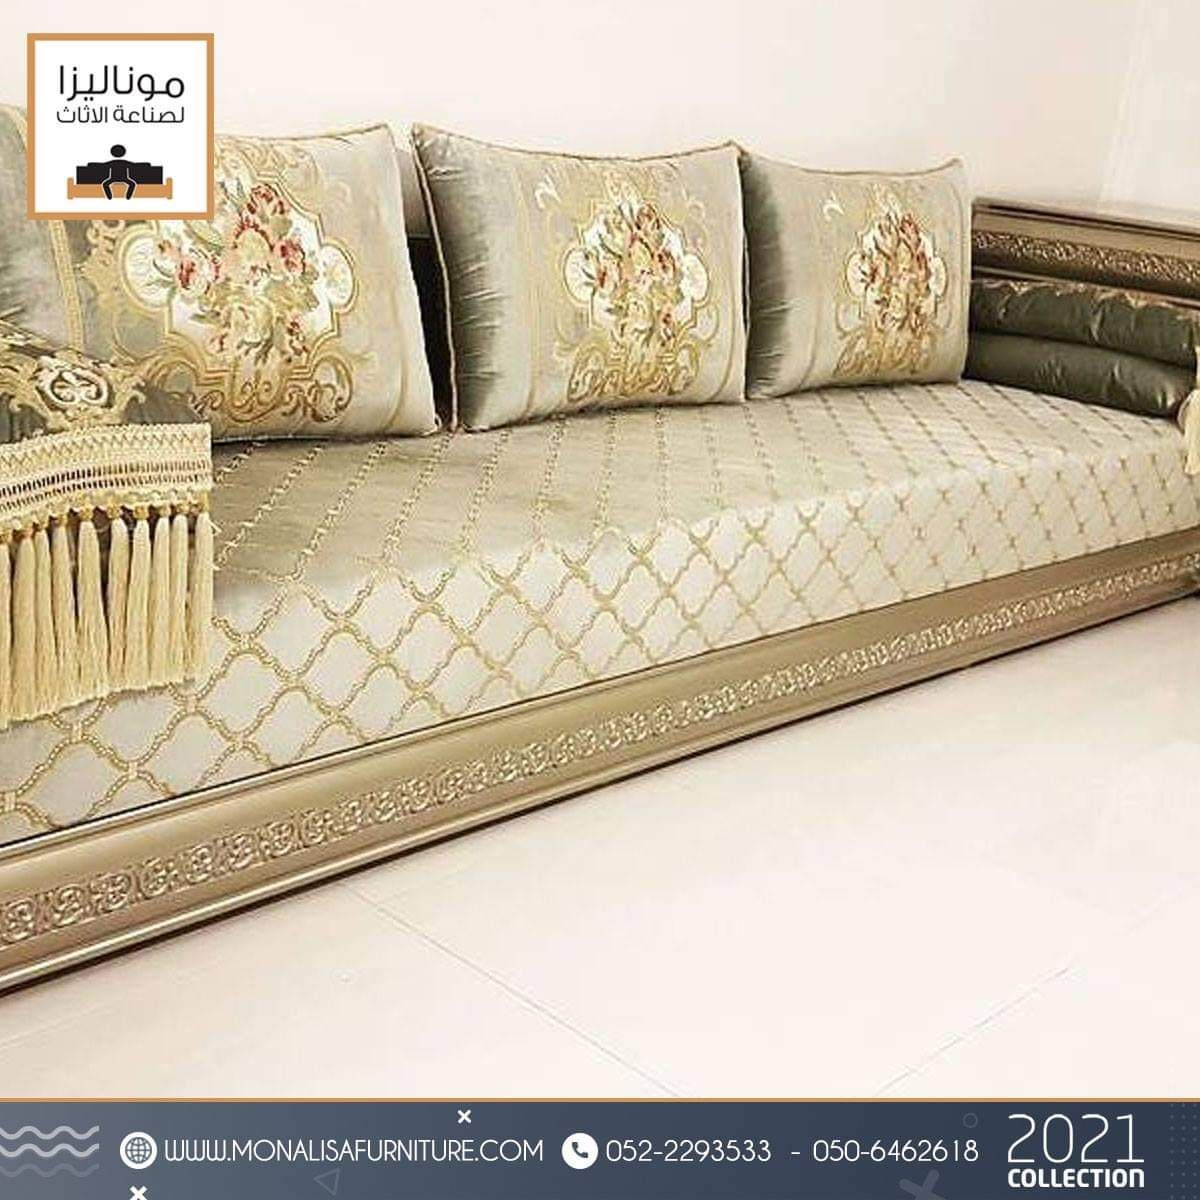 Moroccan Jalsa Gold جلسة مغربية ذهبية In 2021 Home Furniture Furniture Online Furniture Shopping